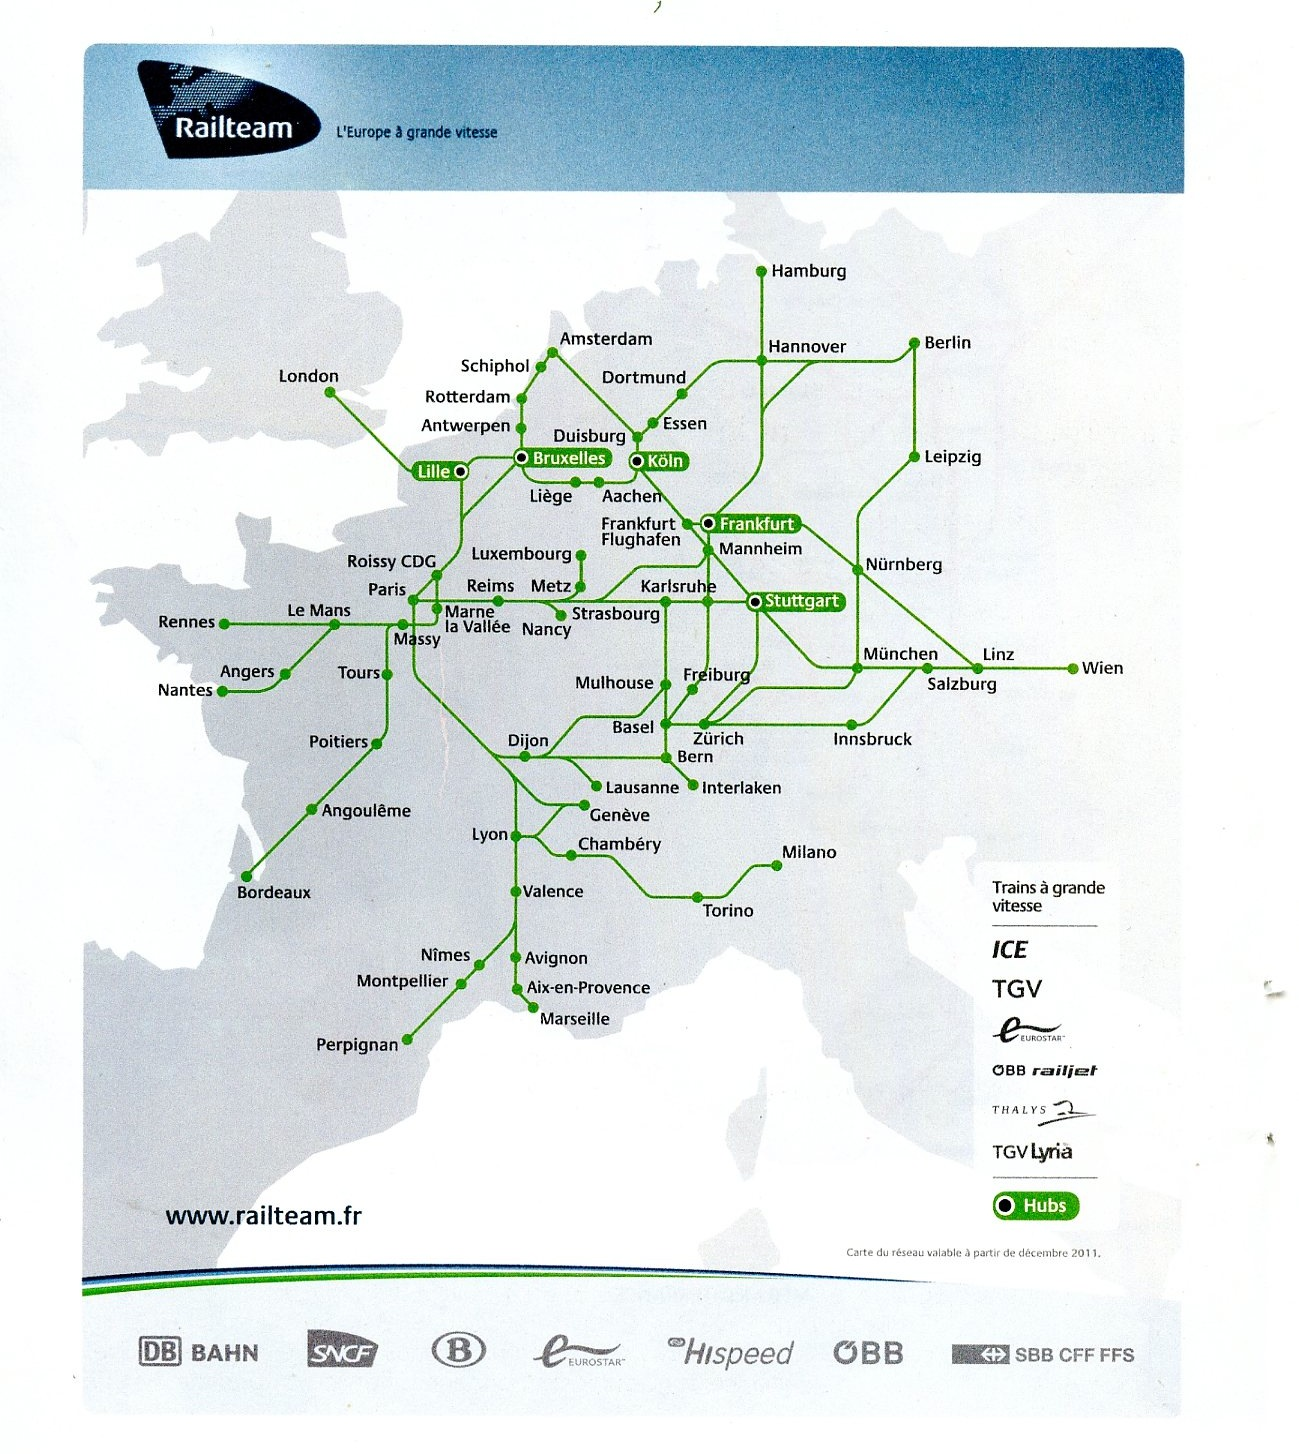 http://www.projectmapping.co.uk/Europe%20World/Resources/Railteam%20map%202015.jpg